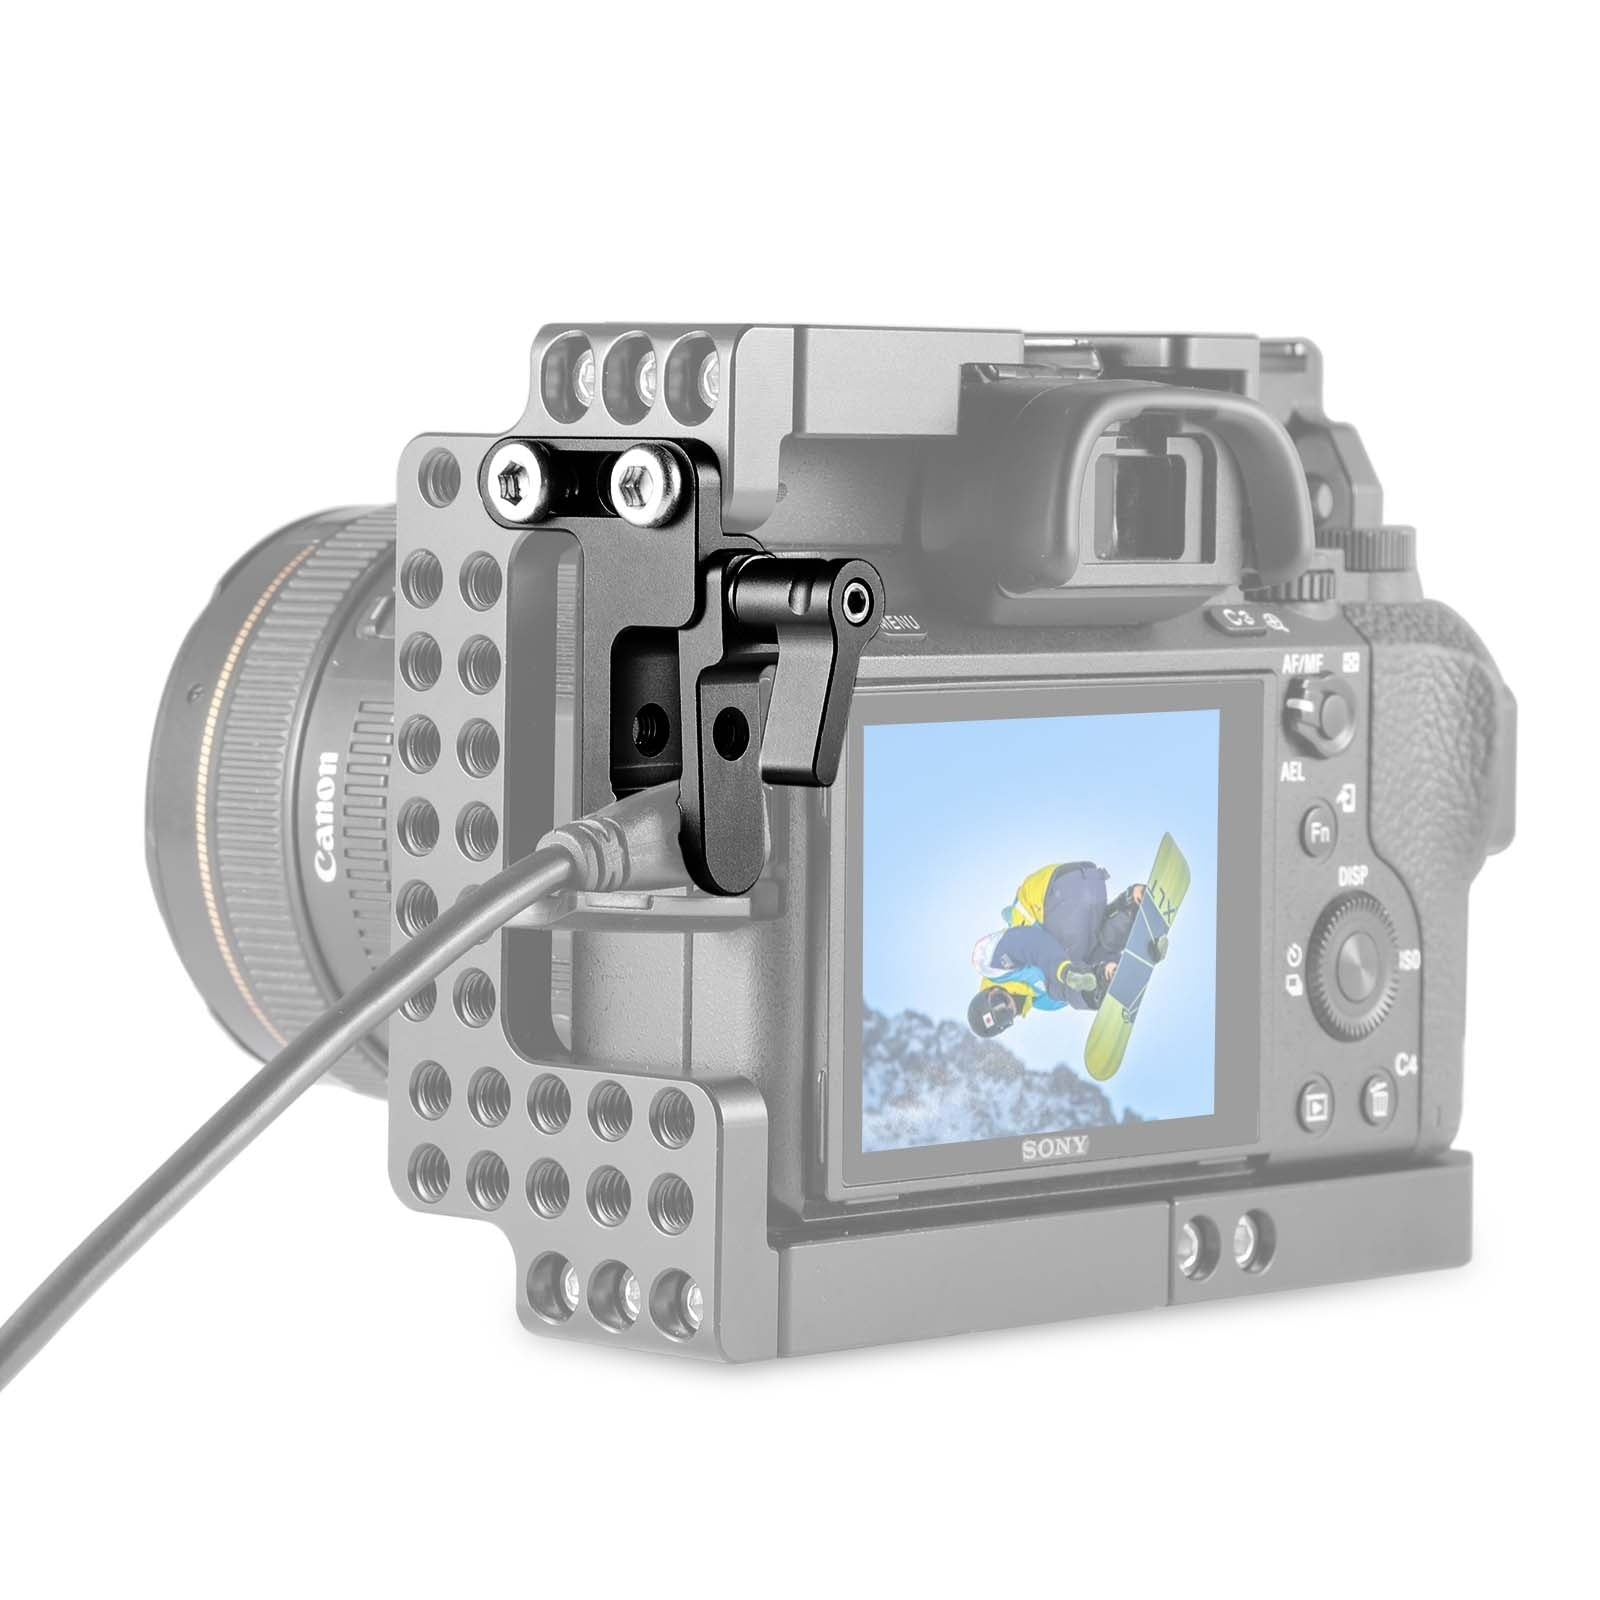 SmallRig Camera HDMI Lock pour Sony A7ii A7III A7RIII SmallRig Cage 1673,1675 and 1660 2087 - 1679 2629